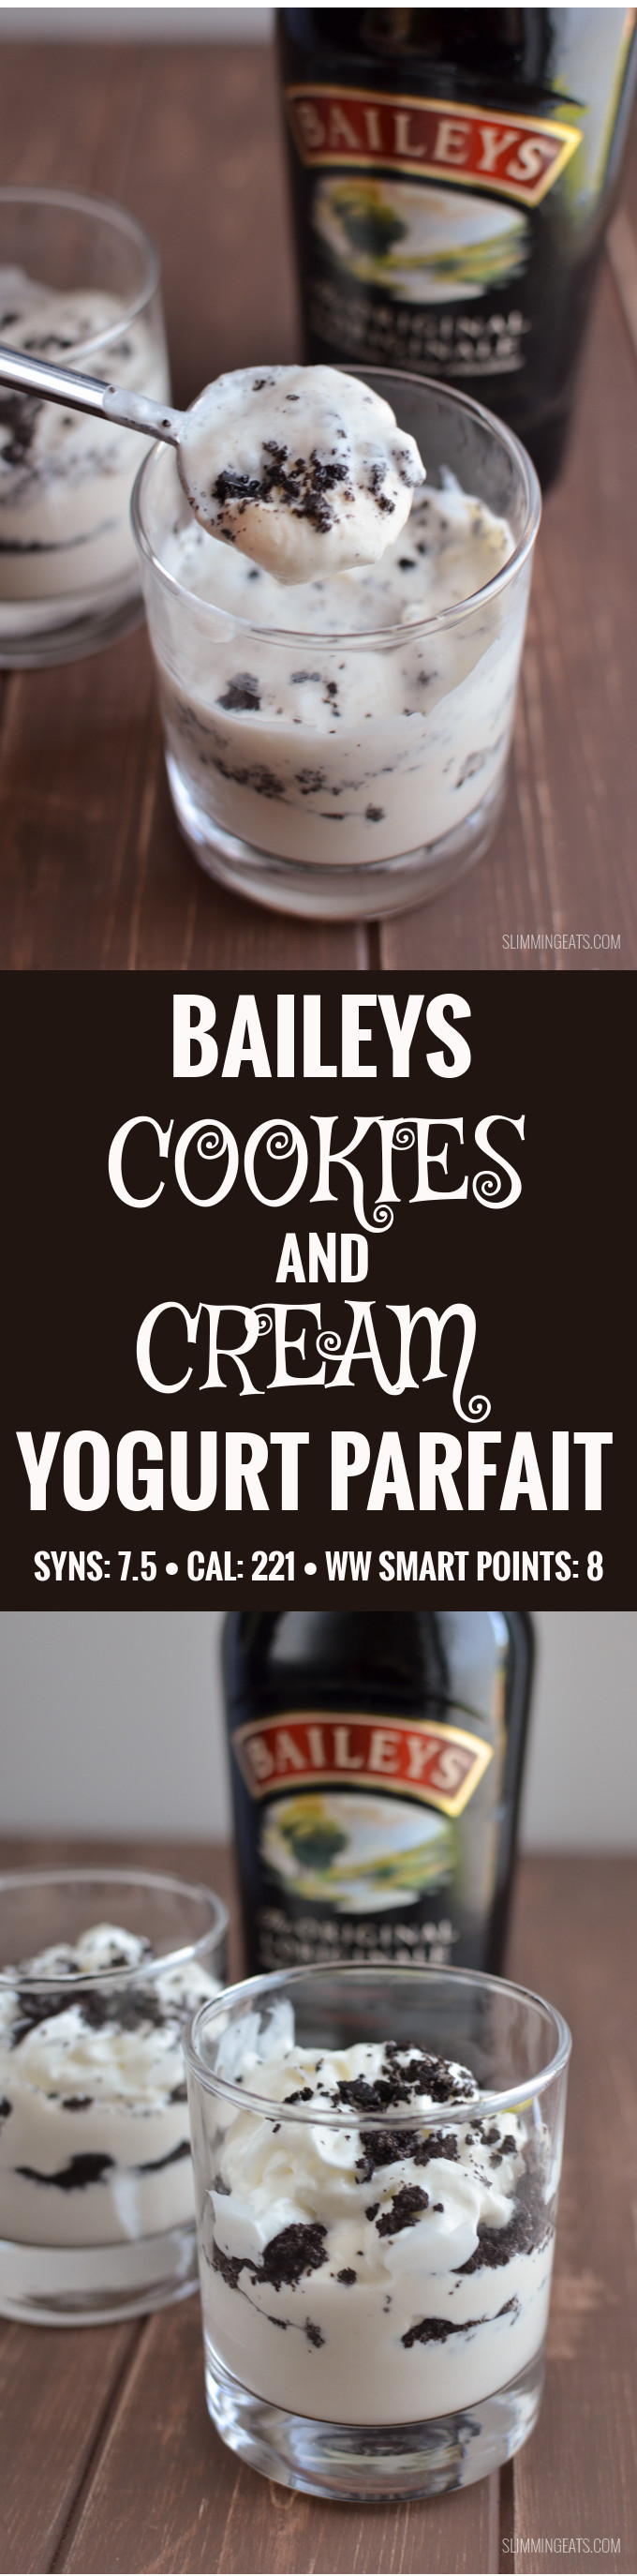 Slimming Eats Baileys Cookies and Cream Yogurt Parfait - Slimming World and Weight Watchers friendly